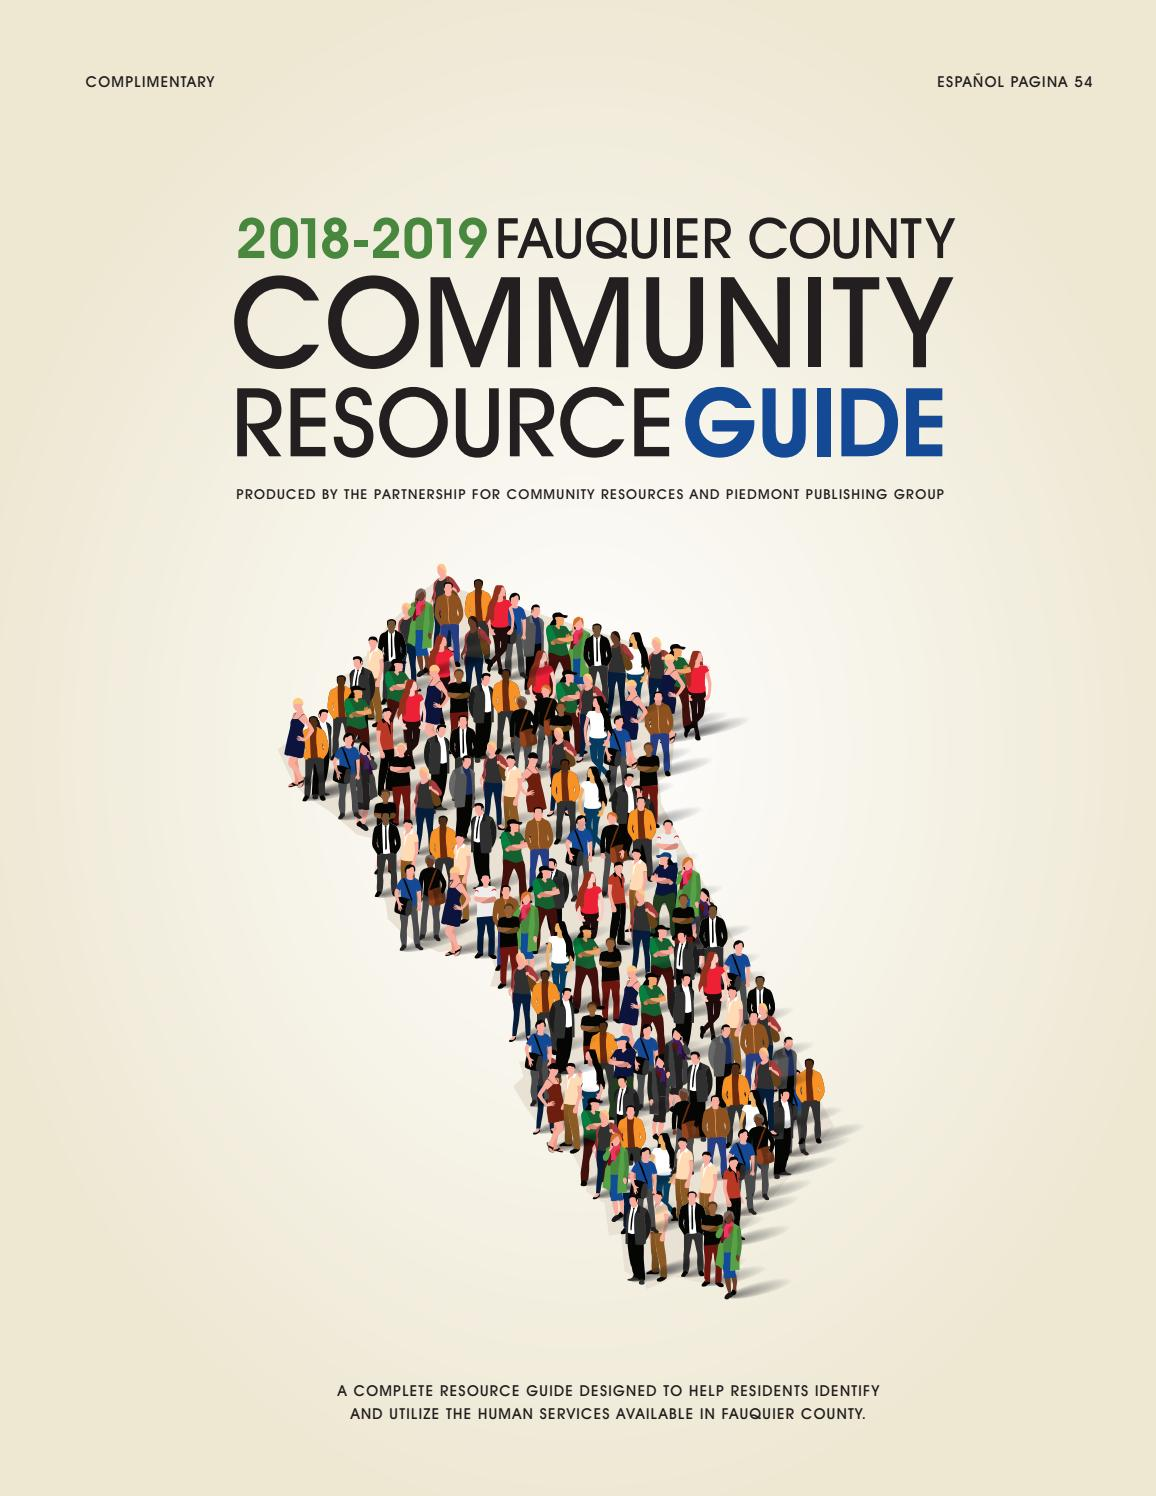 Fauquier Resource Guide 2018 by Piedmont Publishing Group - issuu b1e8ede523460